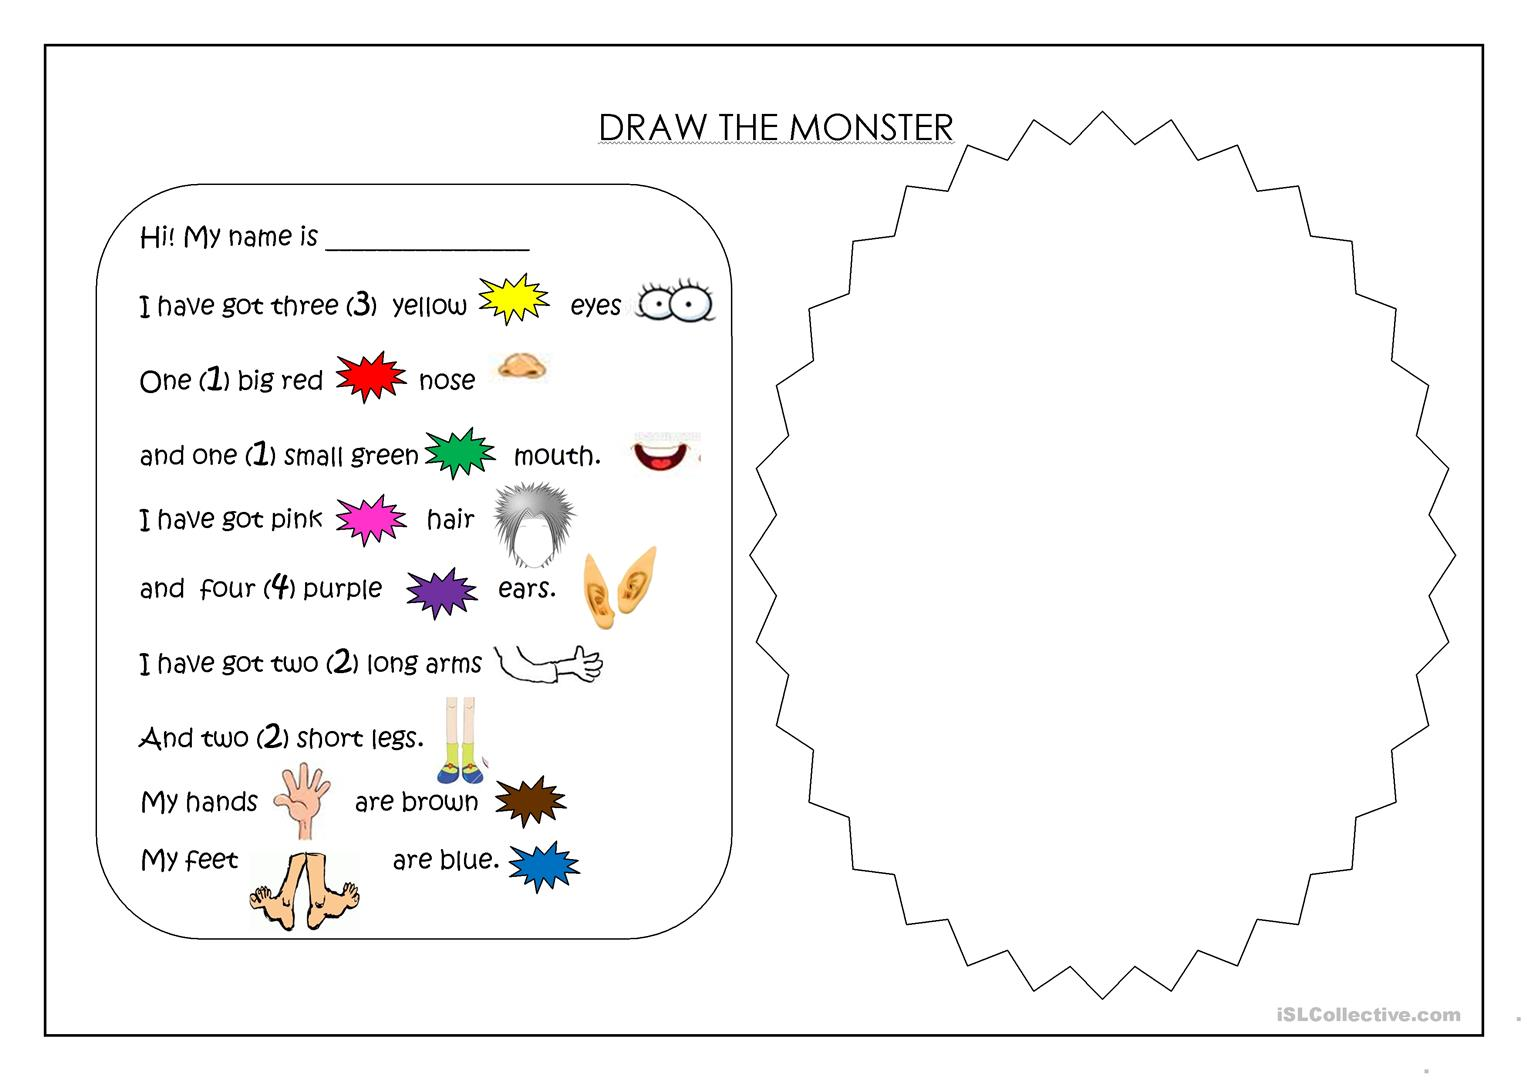 worksheet Body Parts Drawing Worksheet draw a monster worksheet free esl printable worksheets made by full screen